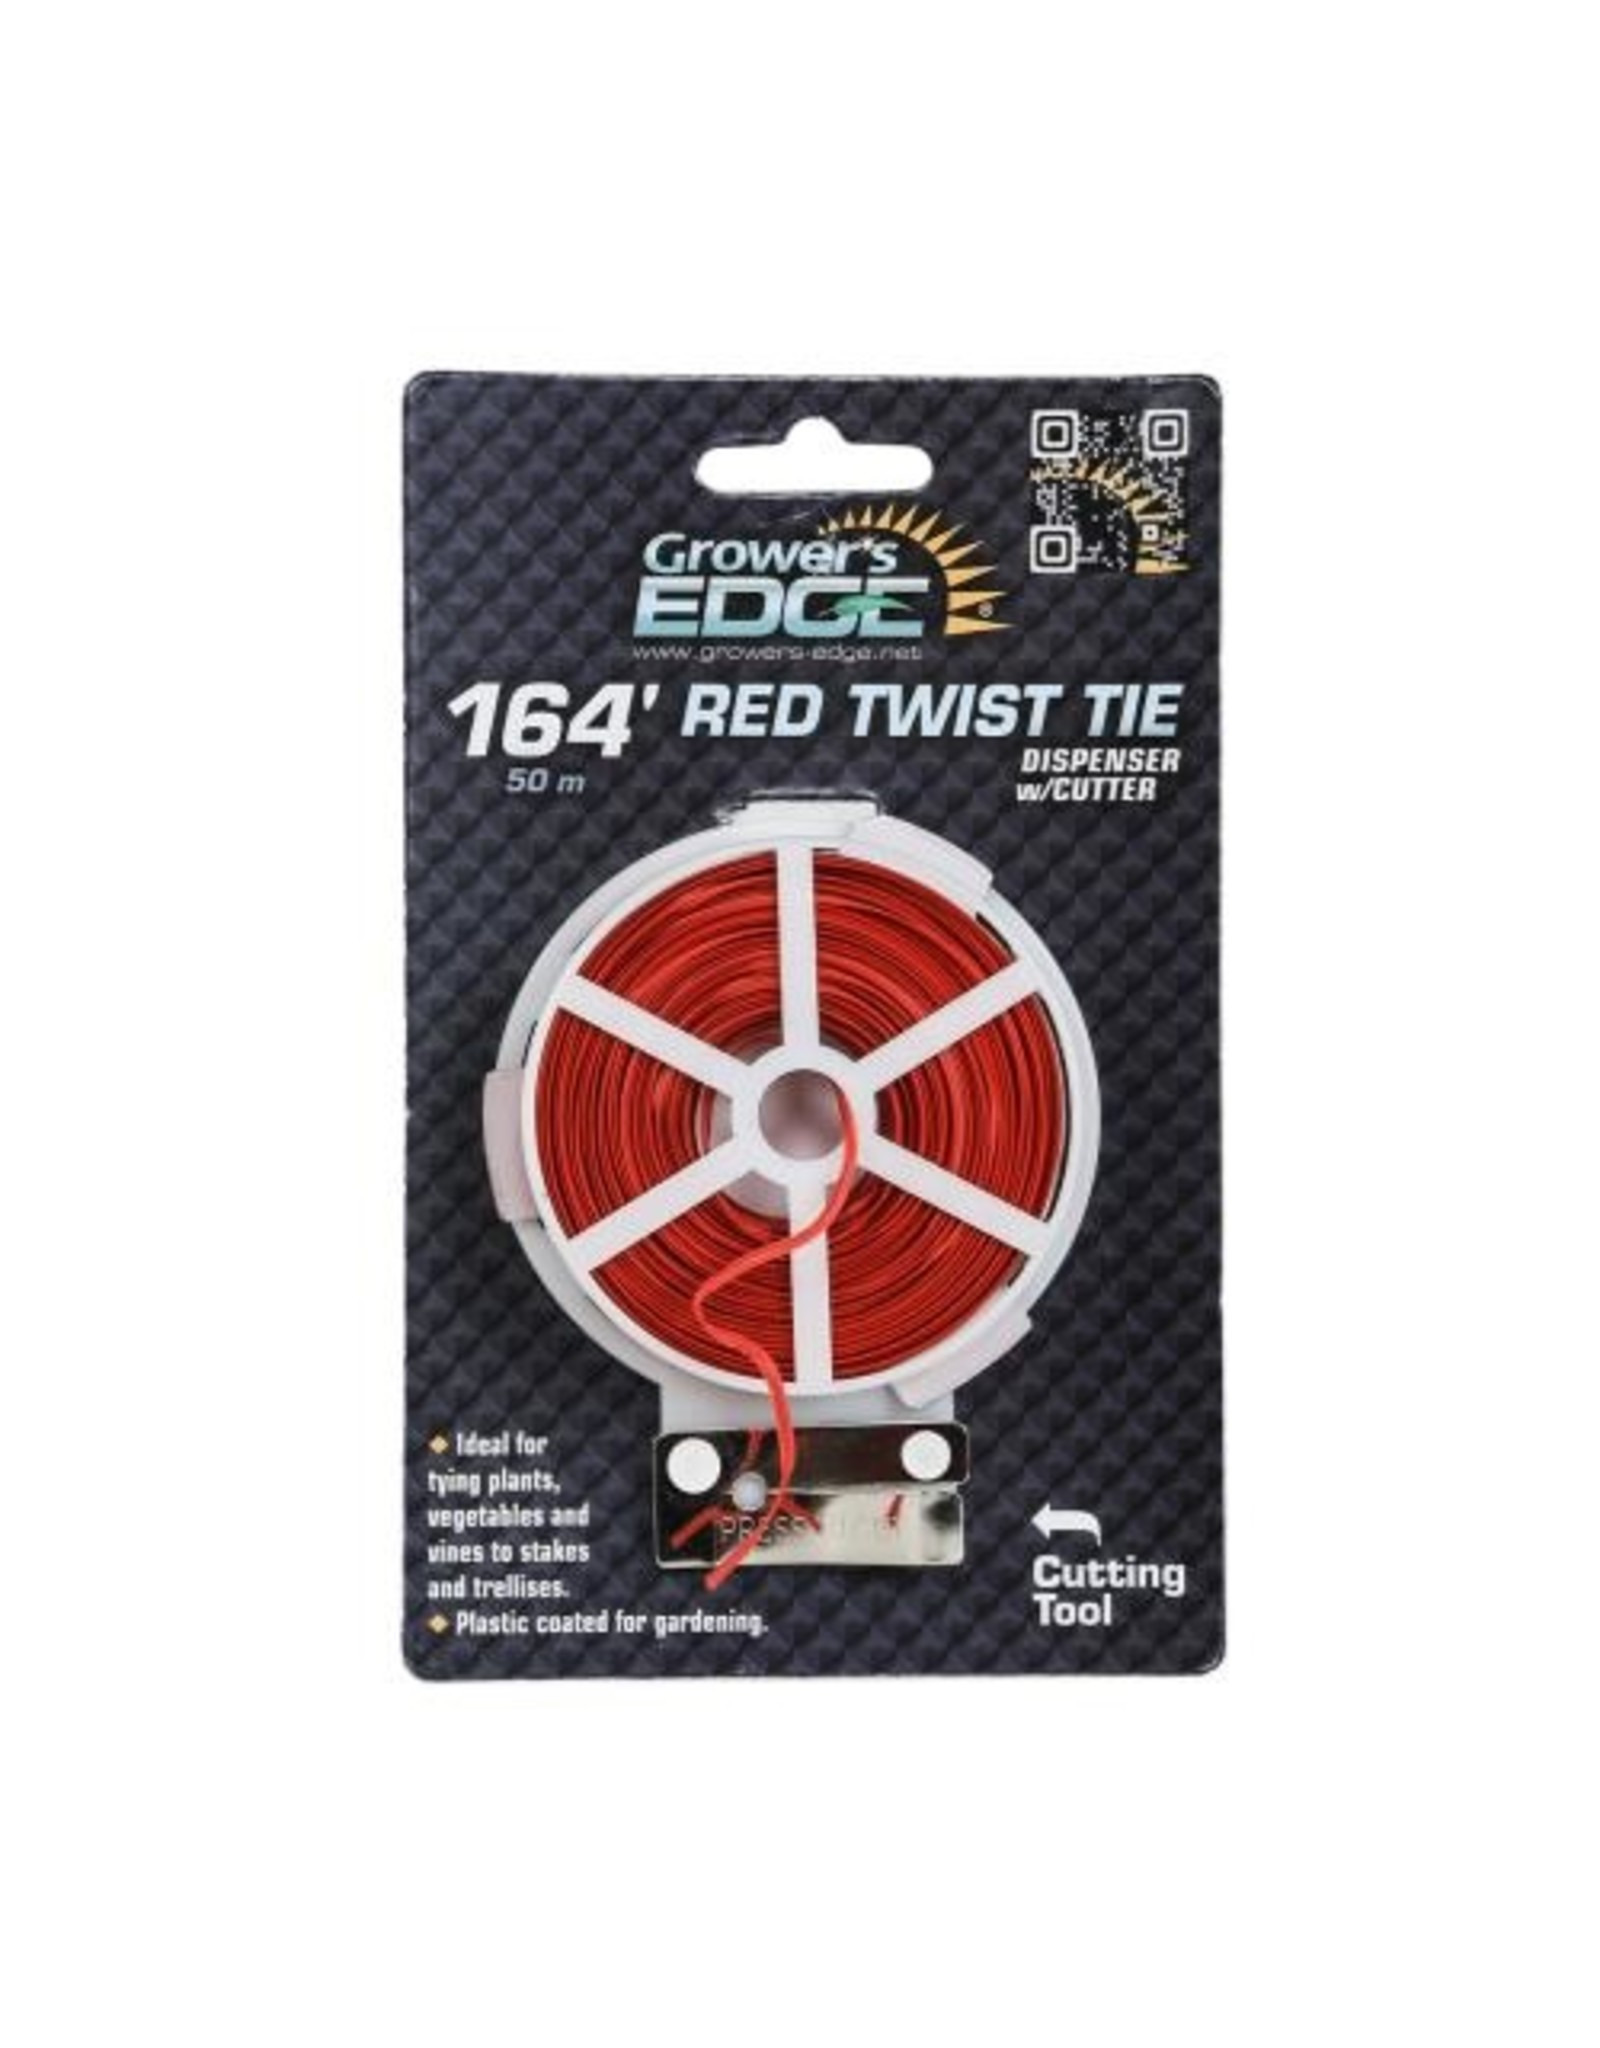 Growers Edge Grower's Edge Red Twist Tie Dispenser w/ Cutter 164 ft